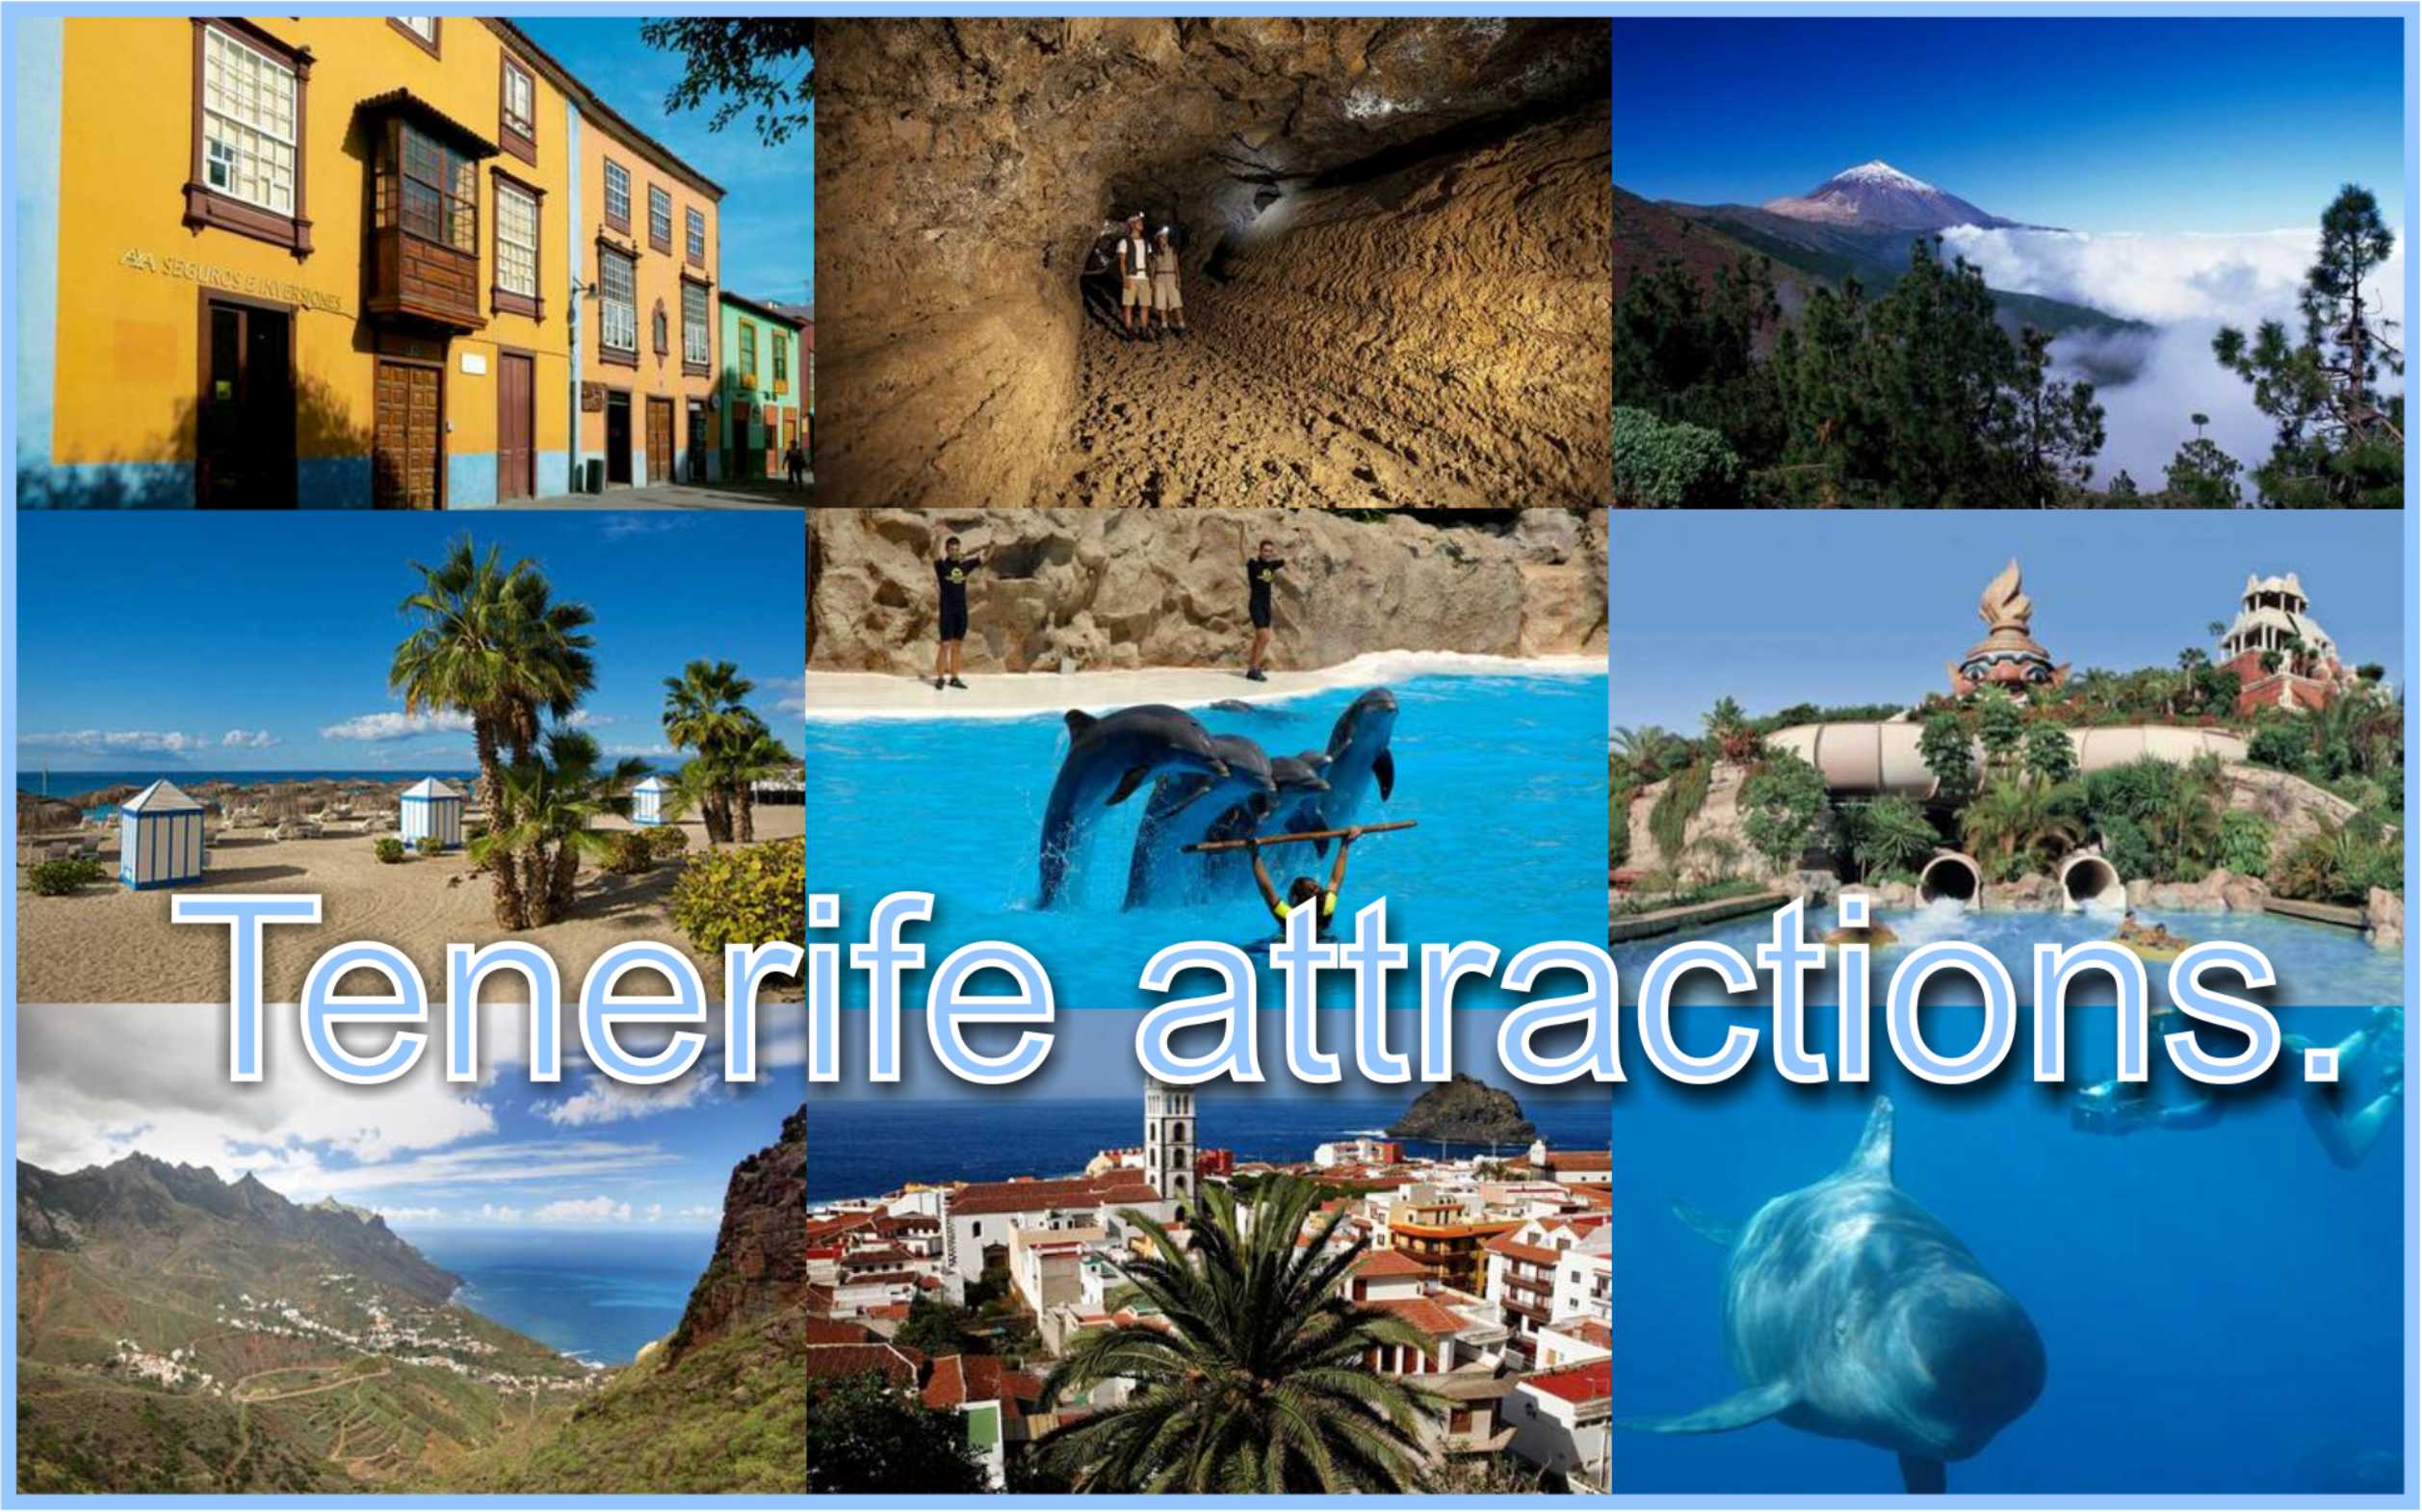 Main Attractions of Tenerife